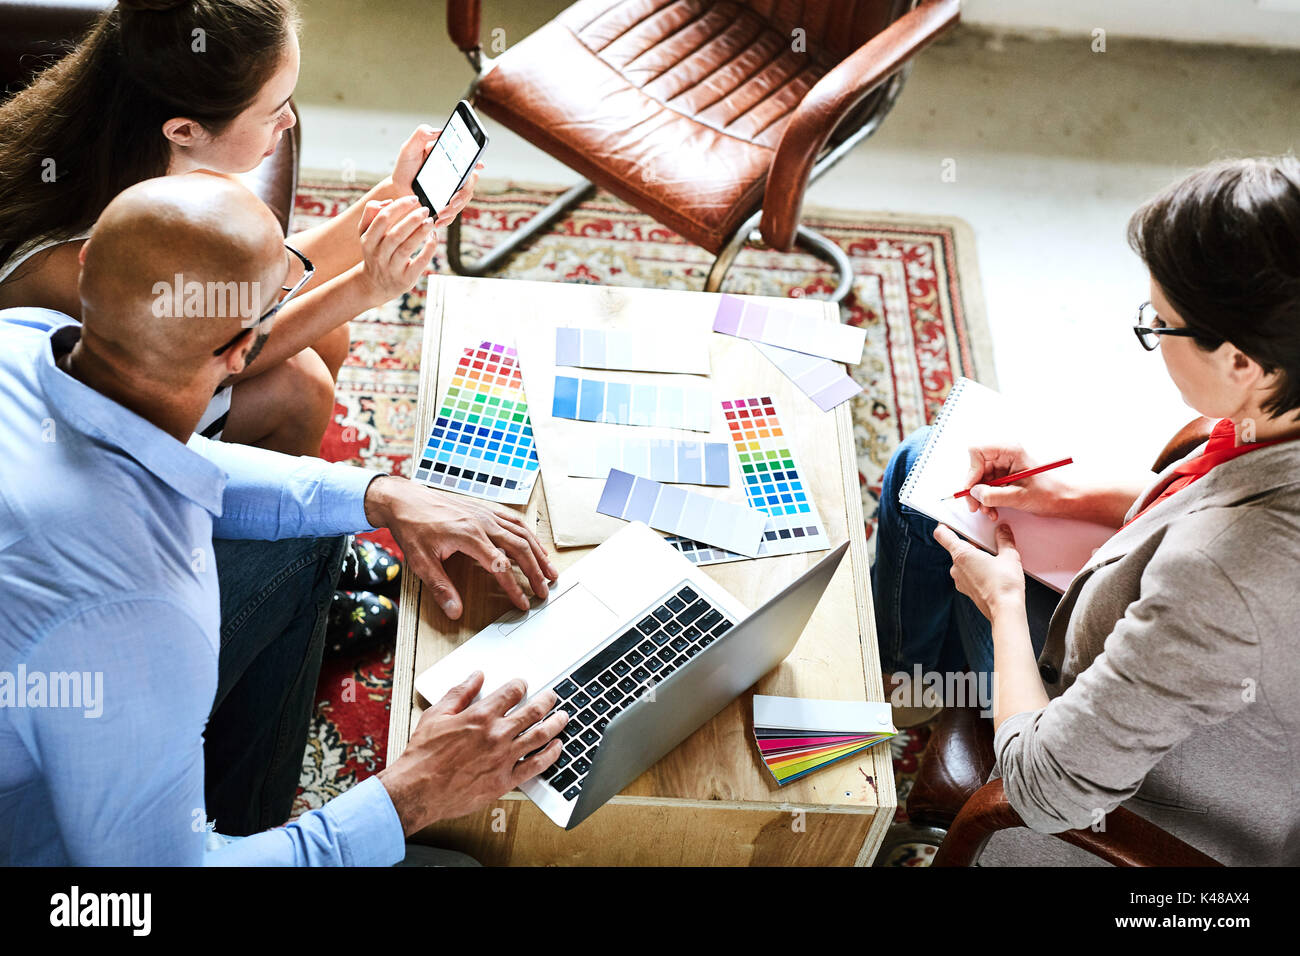 Having Project Discussion with Colleagues - Stock Image